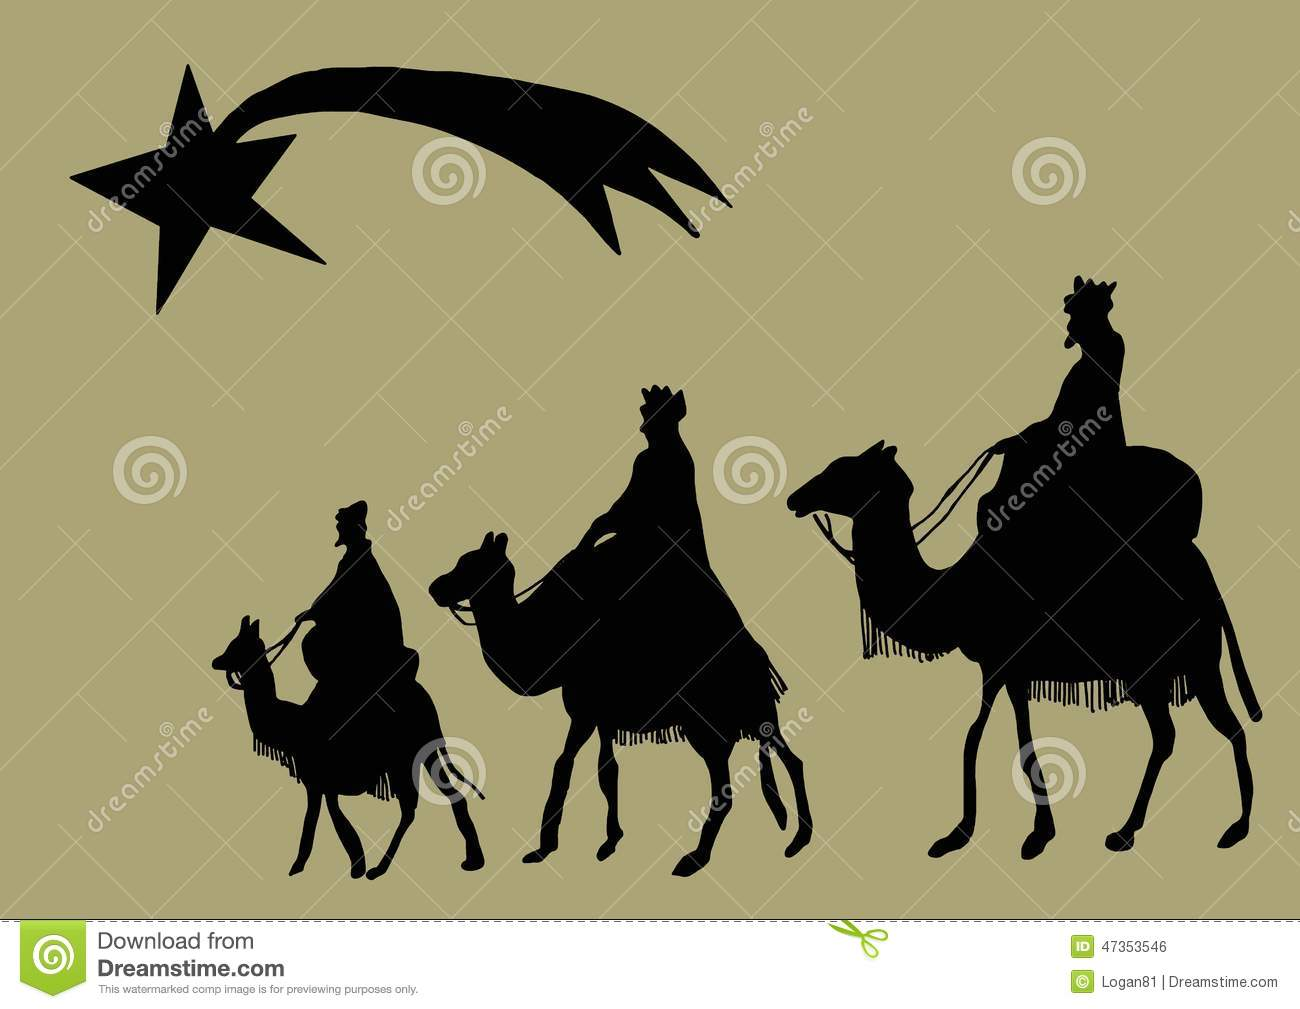 Magi Silhouette Stock Illustration - Image: 47353546